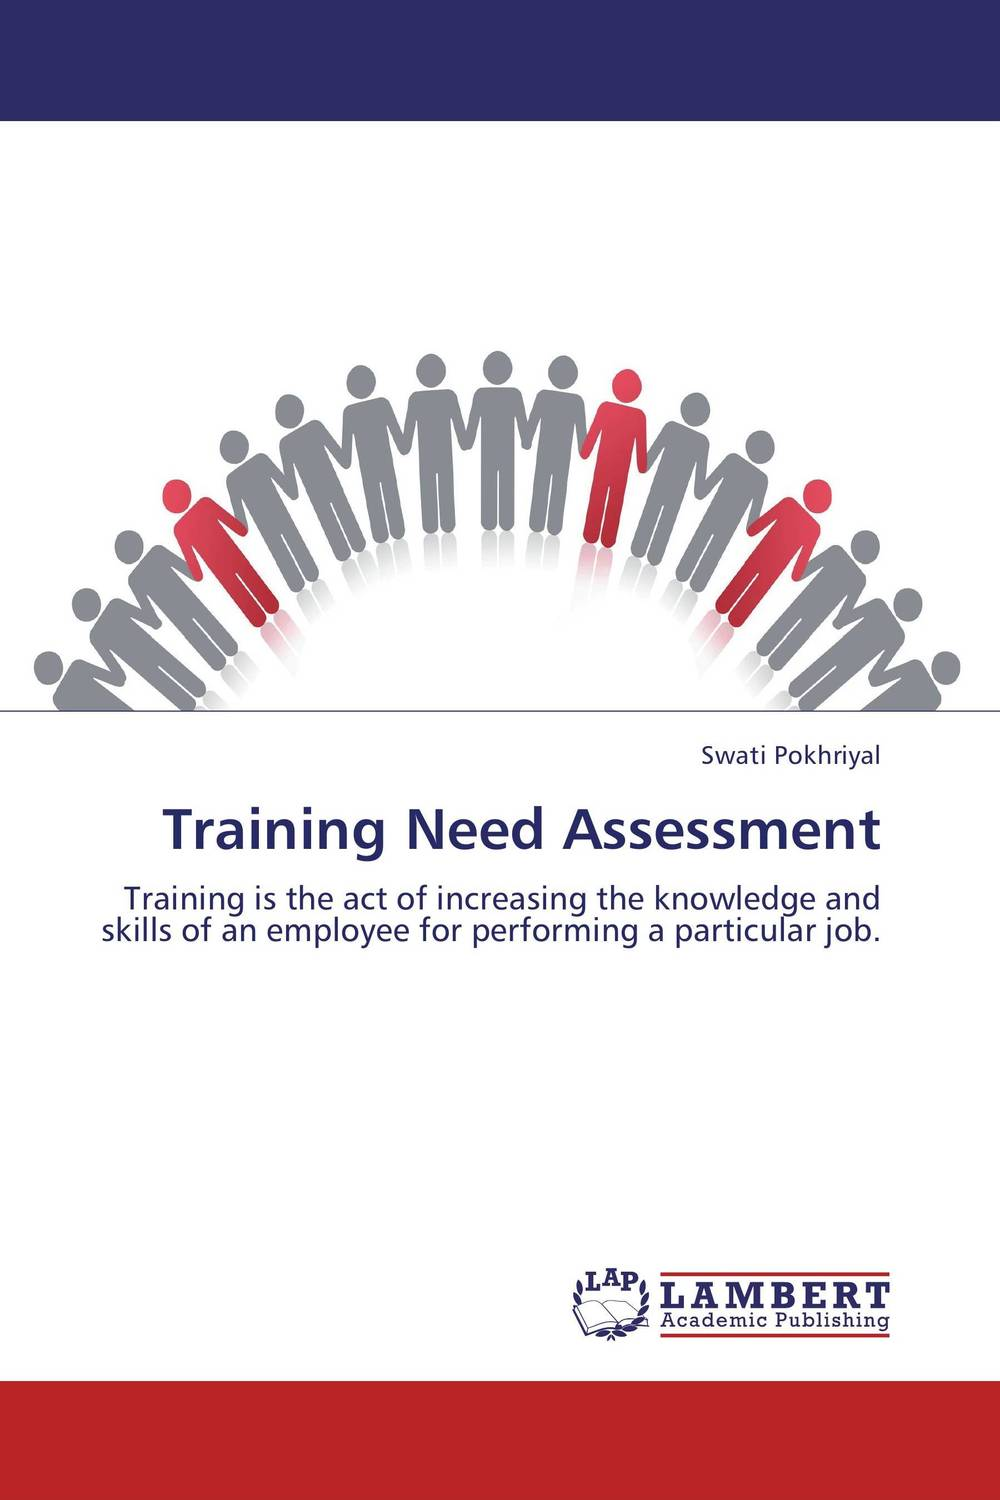 Training Need Assessment technology based employee training and organizational performance